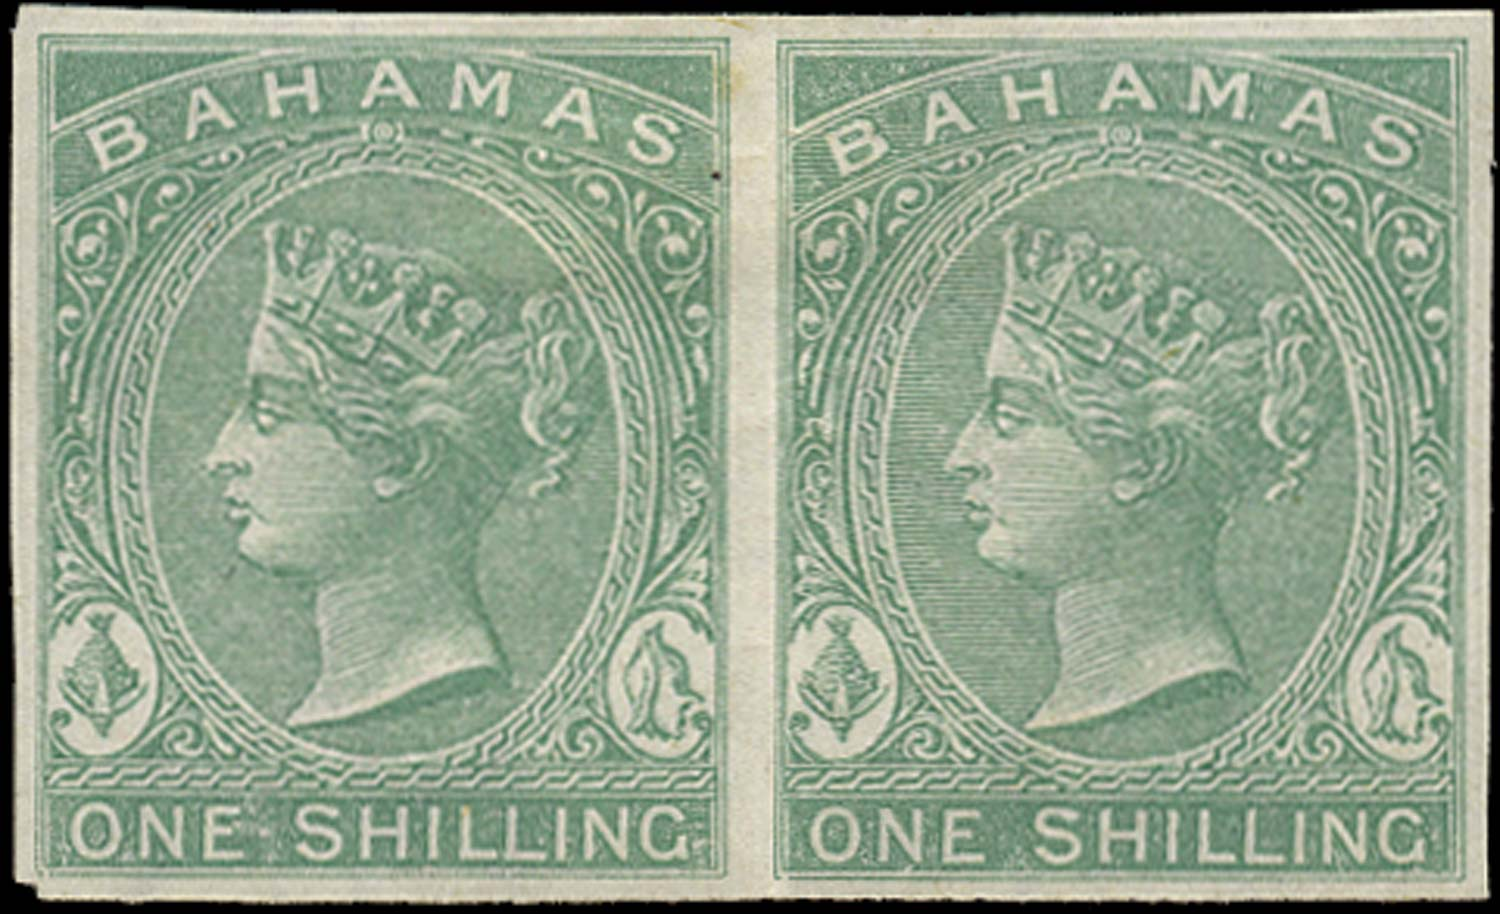 BAHAMAS 1863  SG38 Proof 1s imperforate plate proof on white paper